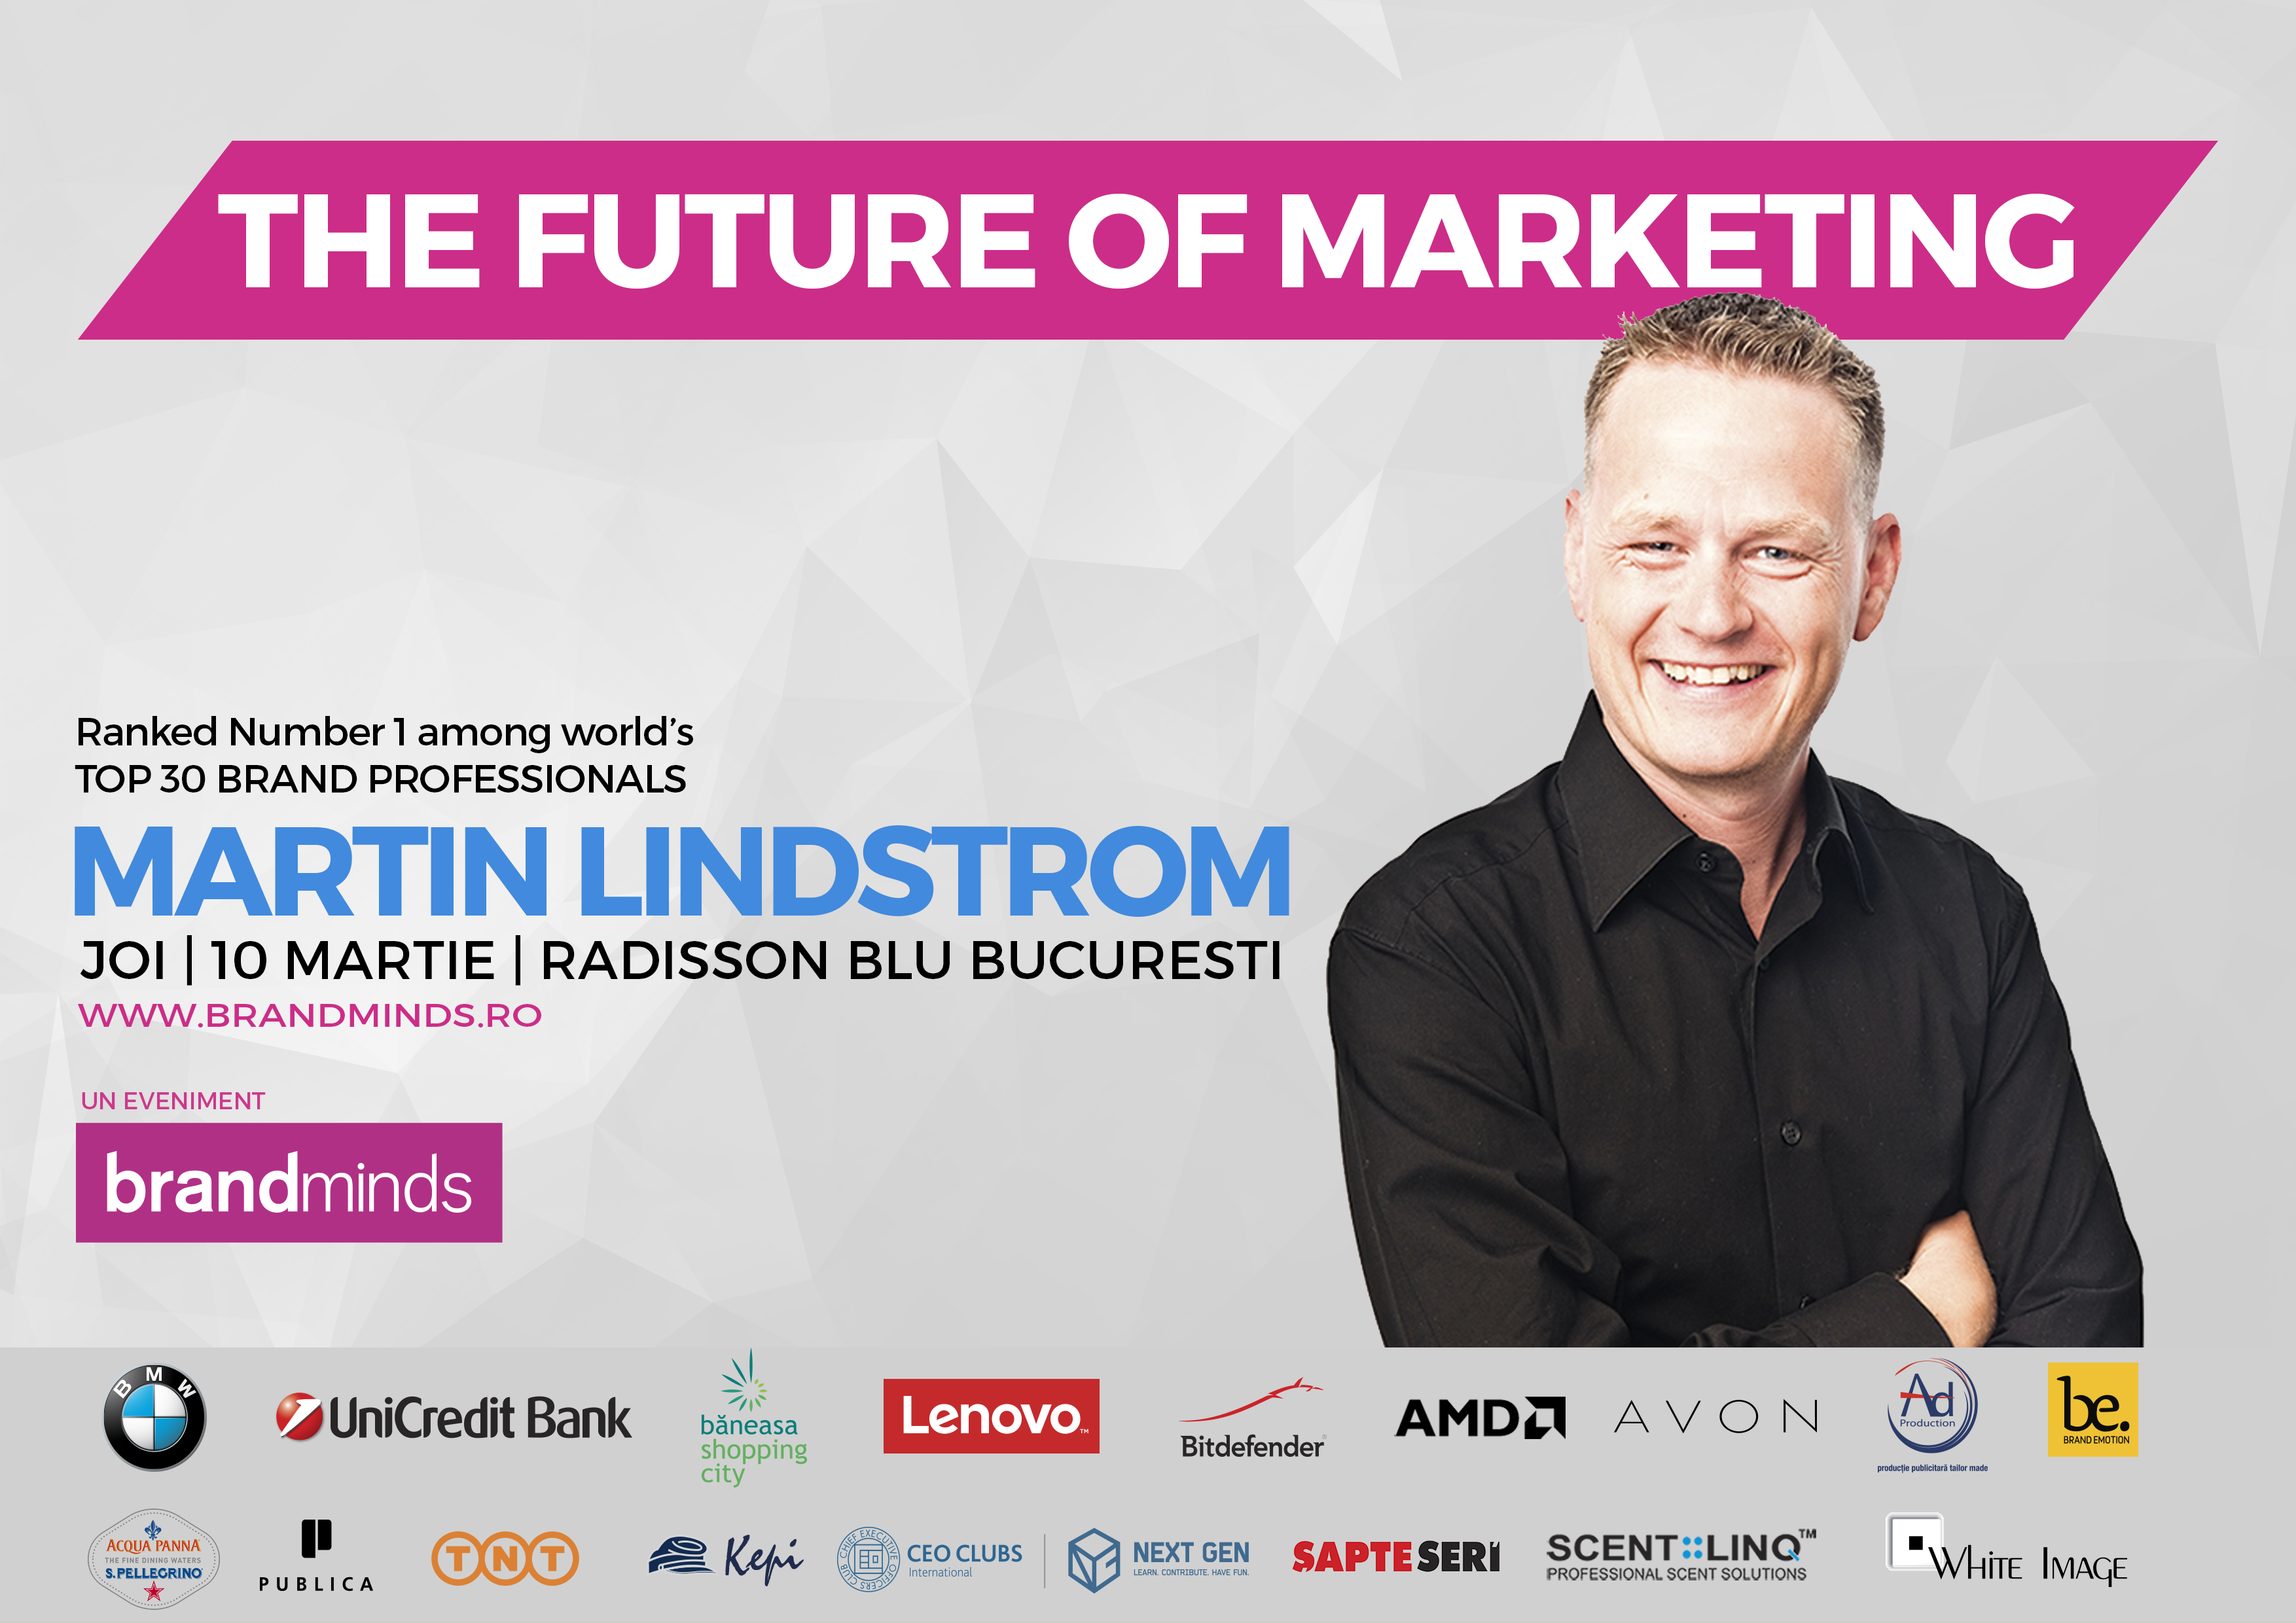 Martin Lindstrom - CEO